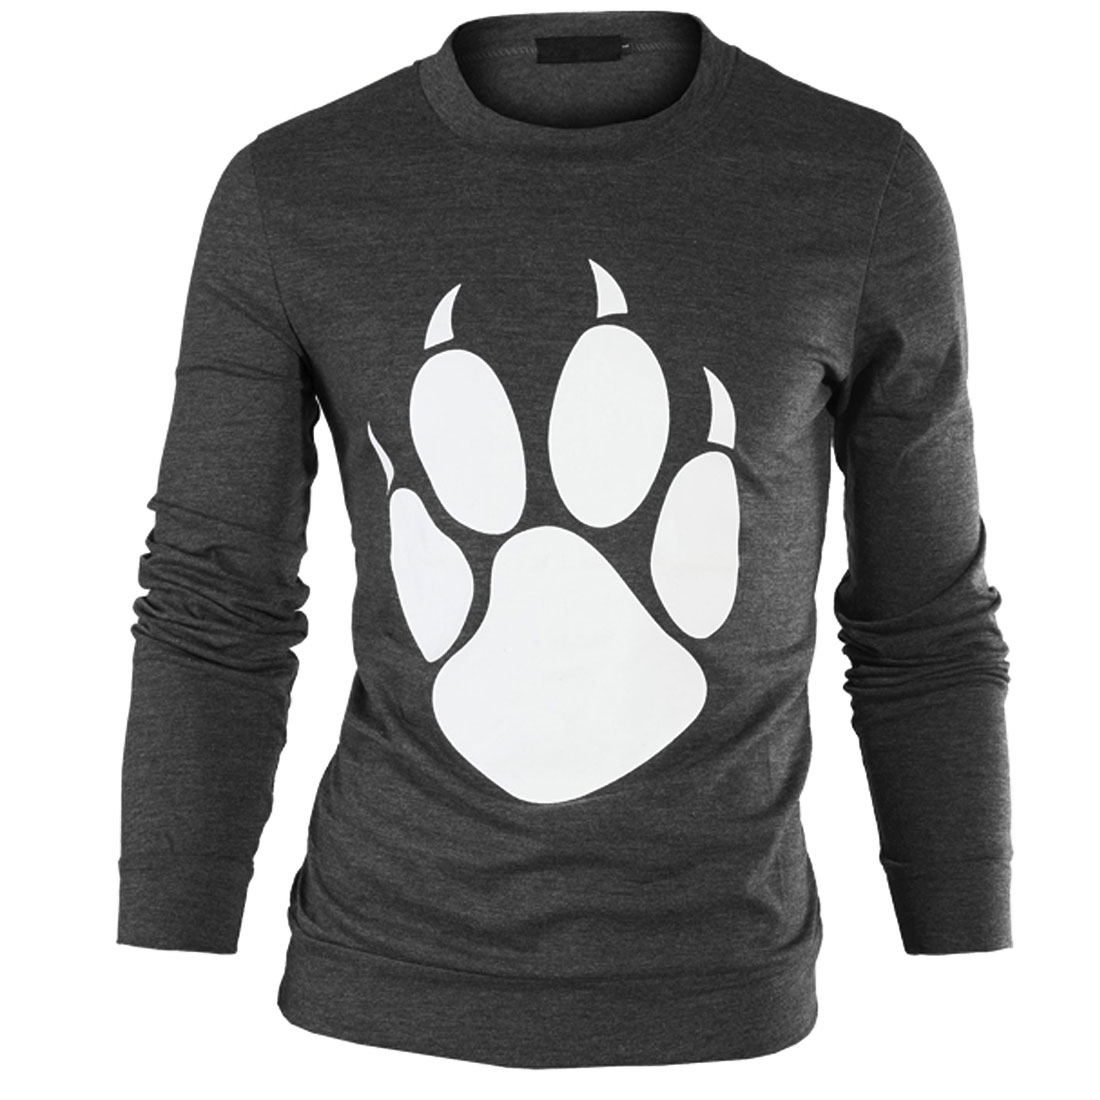 Man Stylish Dark Gray Color Bear Paw Pattern Design Casual T-Shirt M